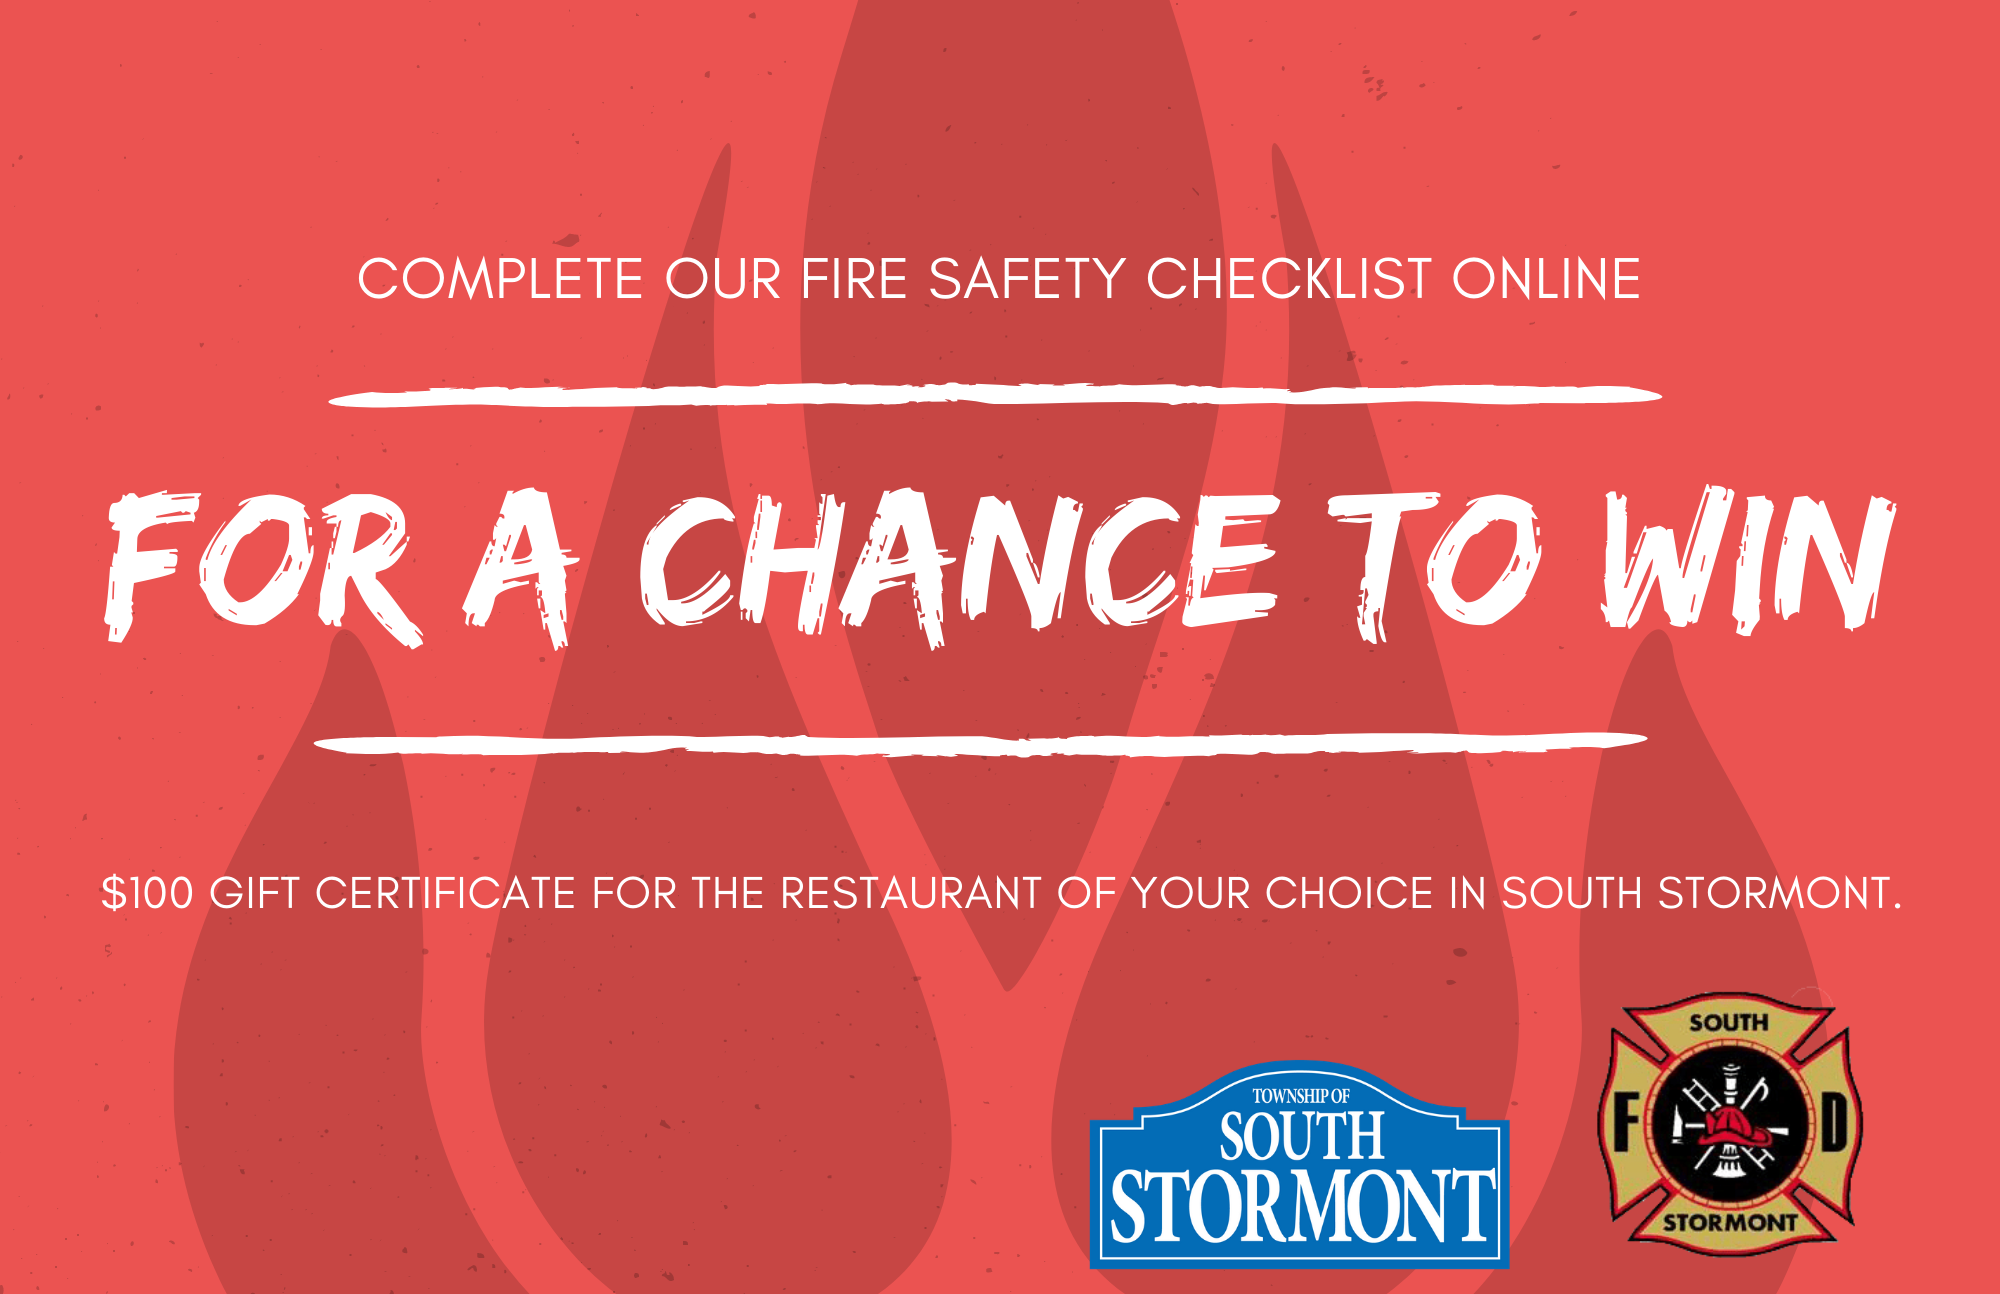 Fire Safety Checklist Contest Poster